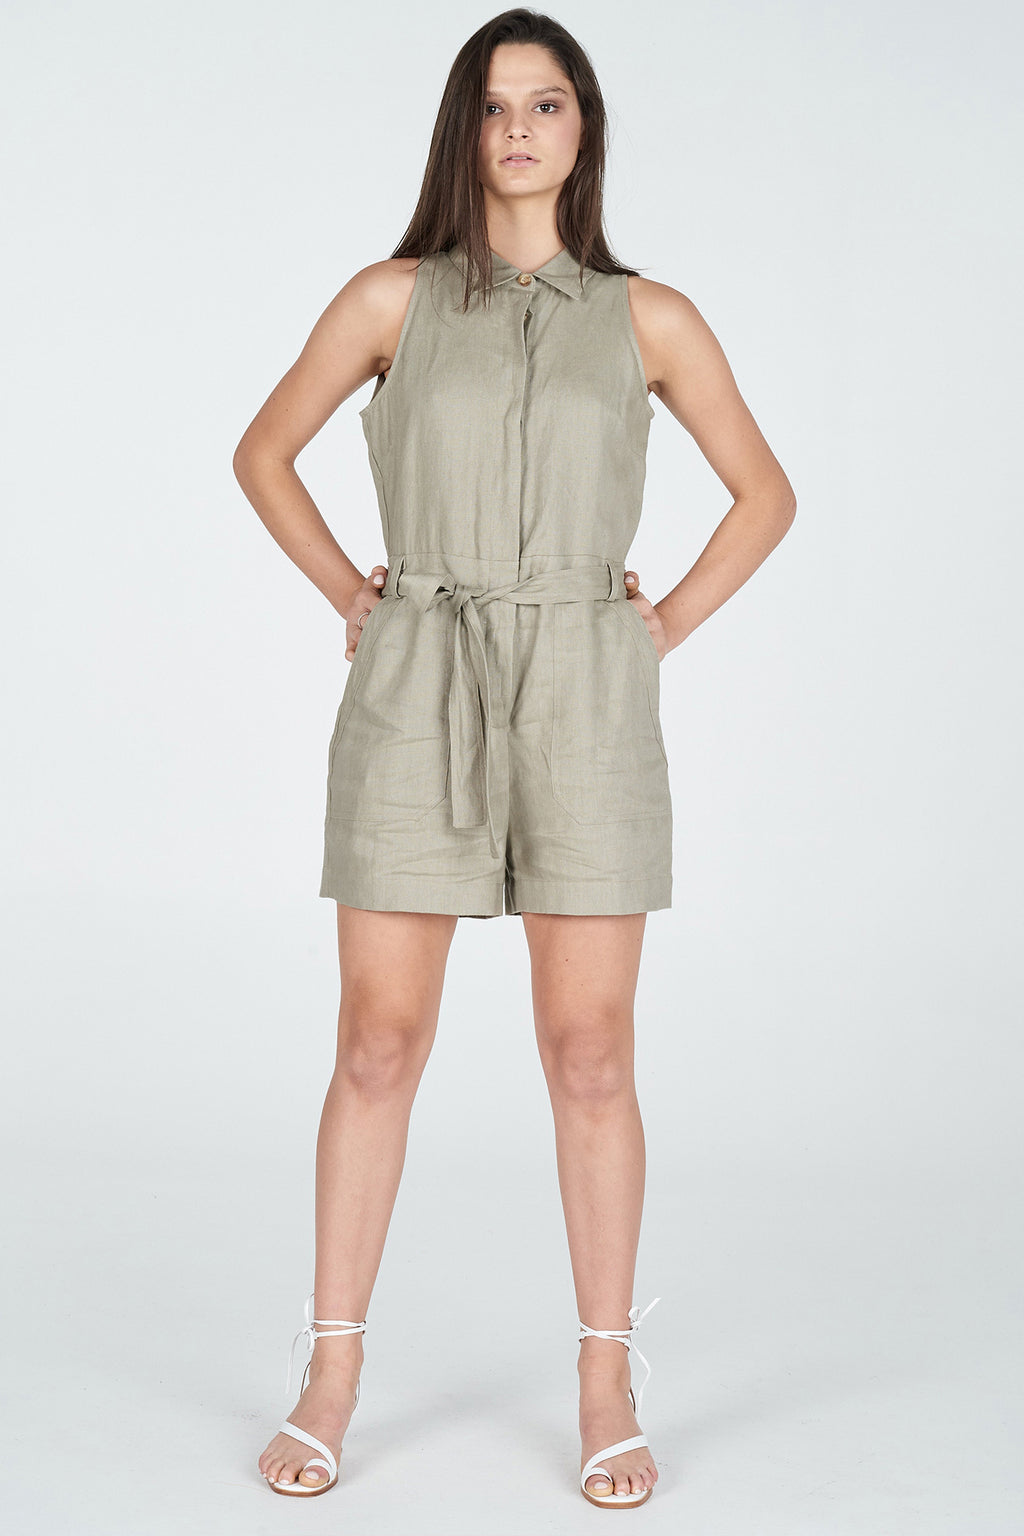 ZOE KRATZMANN - Embark Playsuit online at PAYA boutique